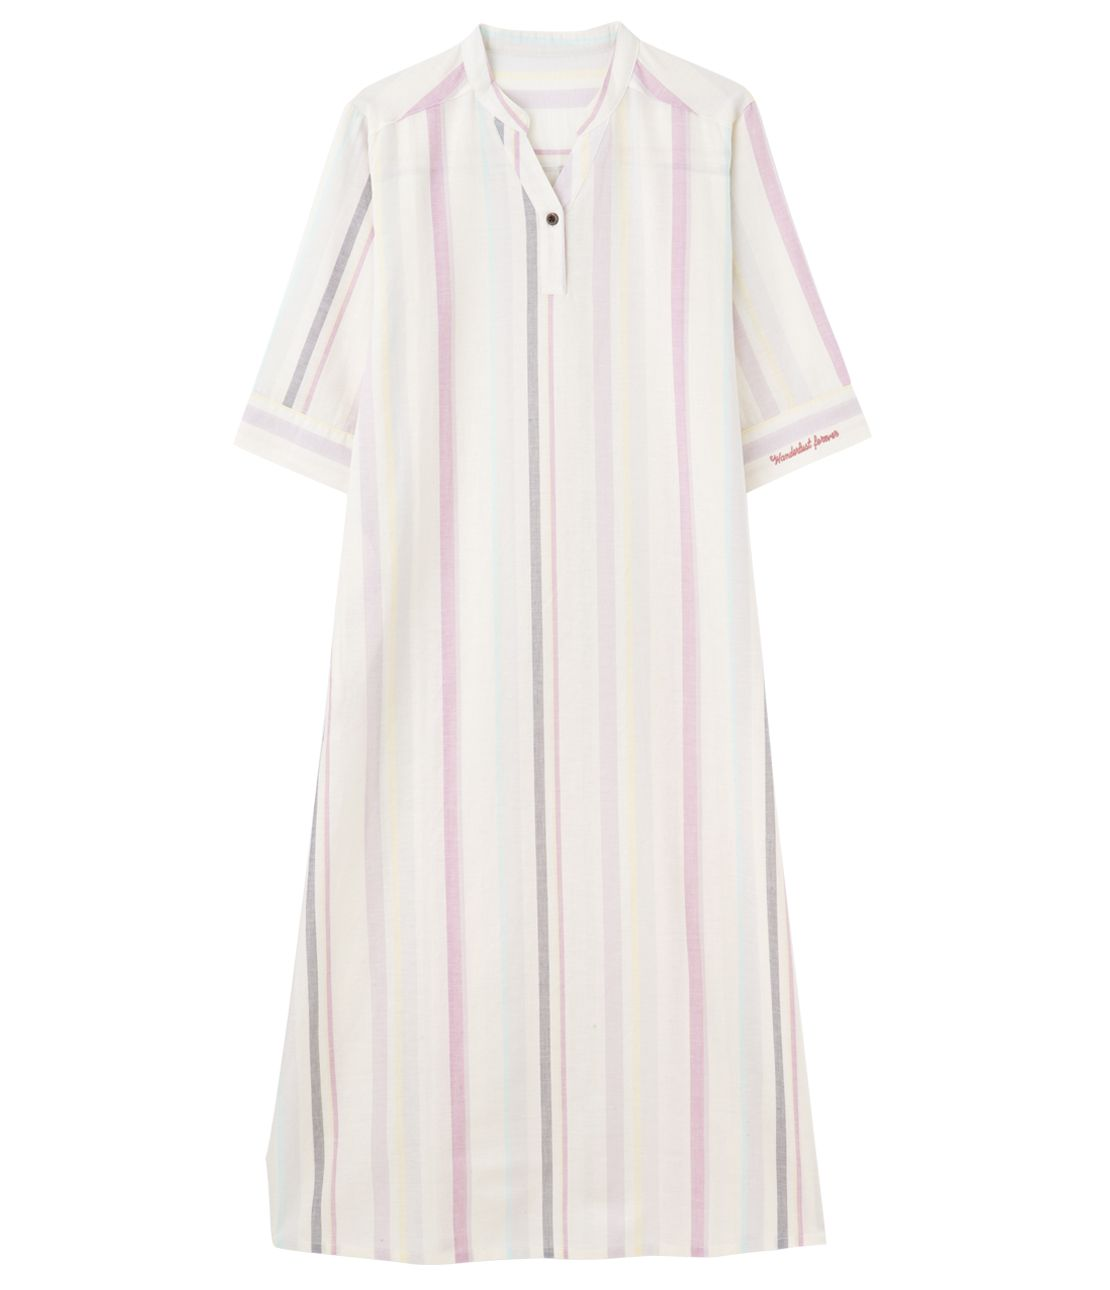 Cotton linen summer shirt dress